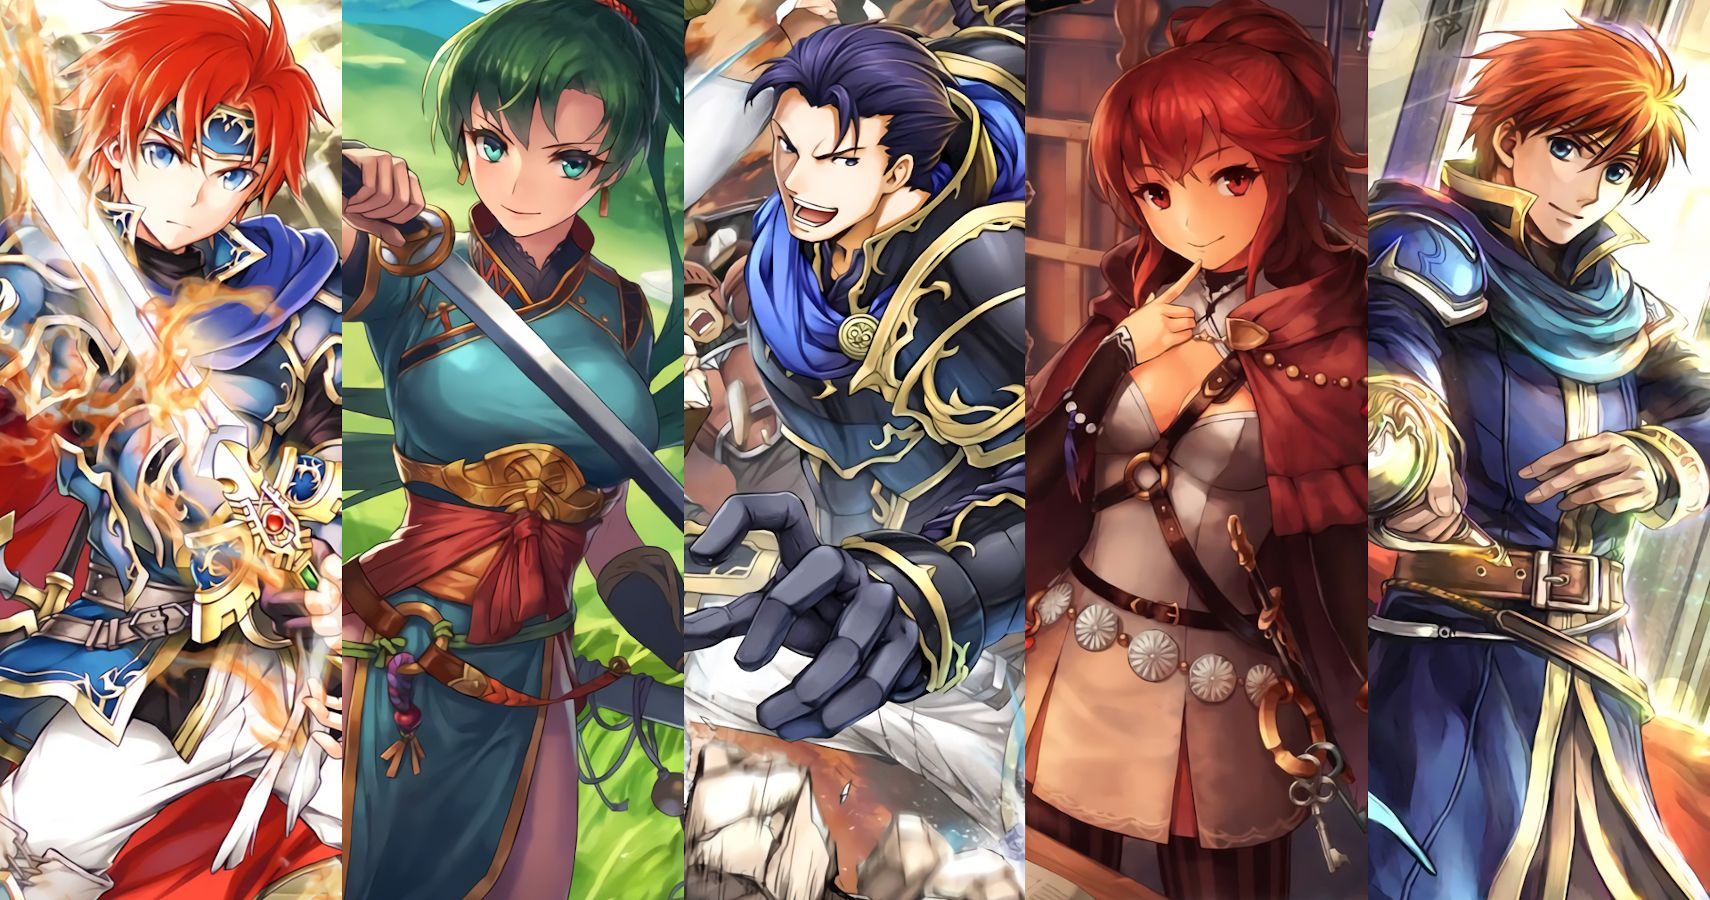 Fire Emblem Every Game Ranked By Difficulty Thegamer